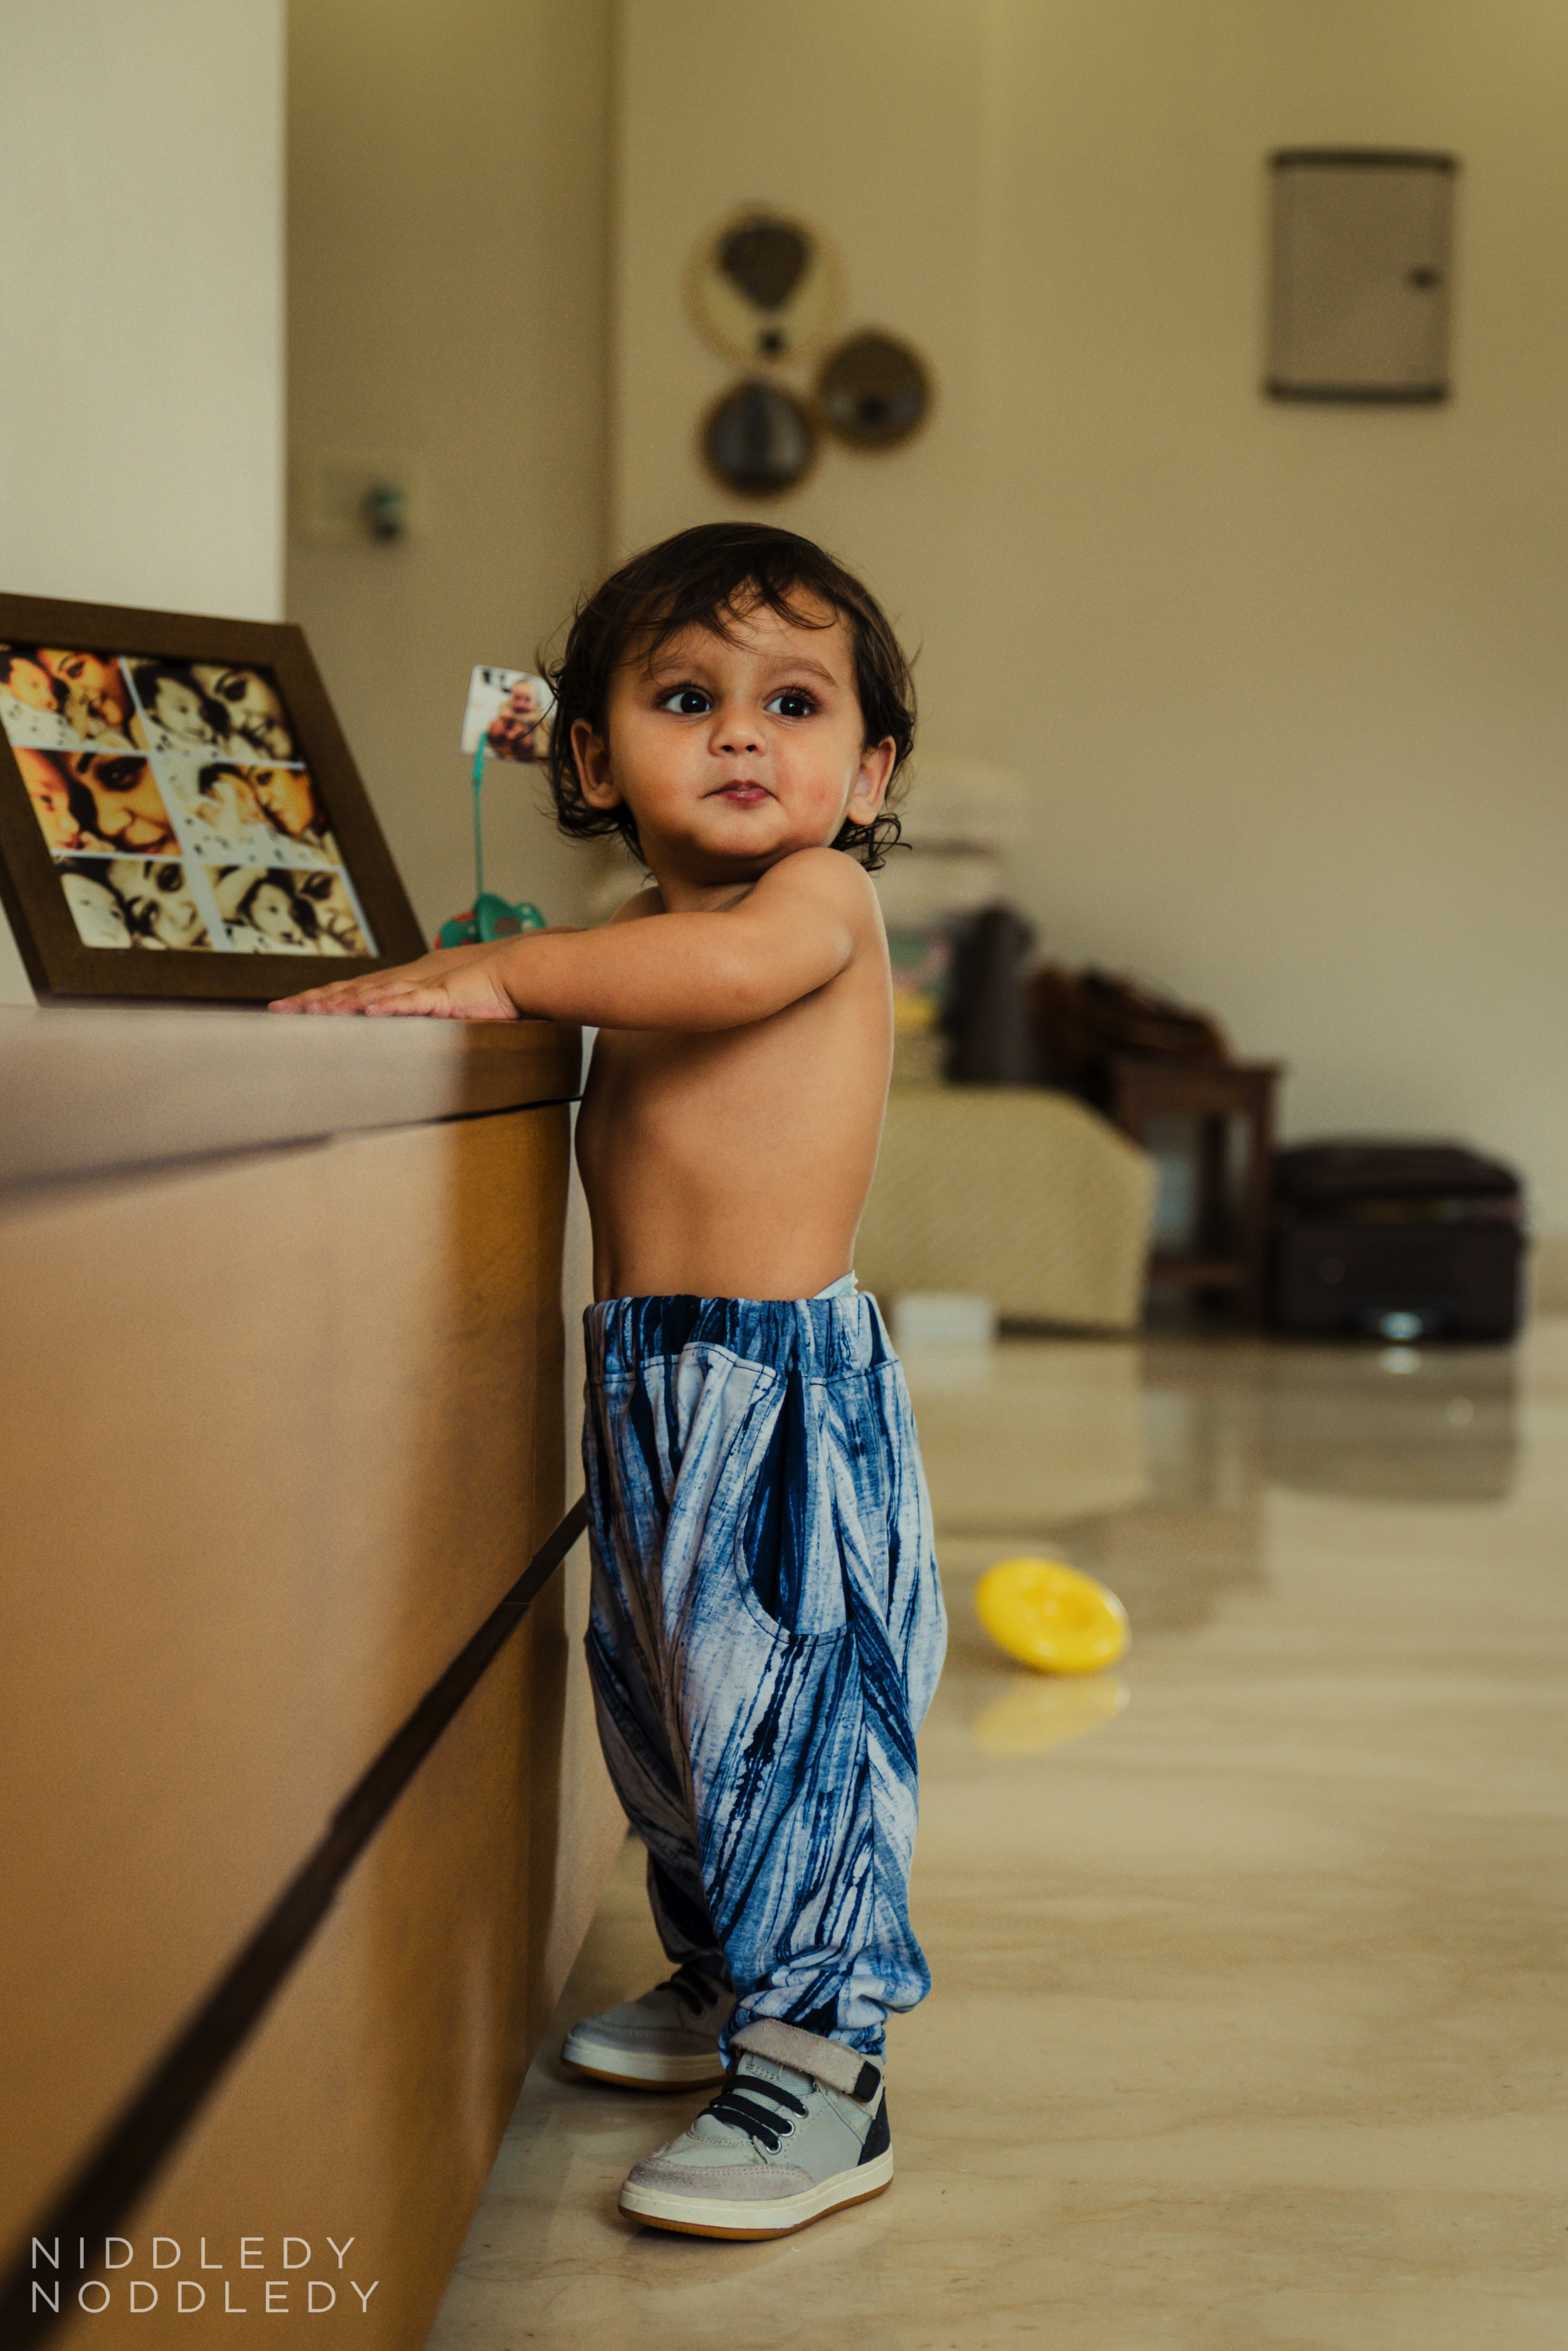 Avyaan's Day Photoshoot ❤ NiddledyNoddledy.com ~ Bumps to Babies Photography, Kolkata - 08.jpg